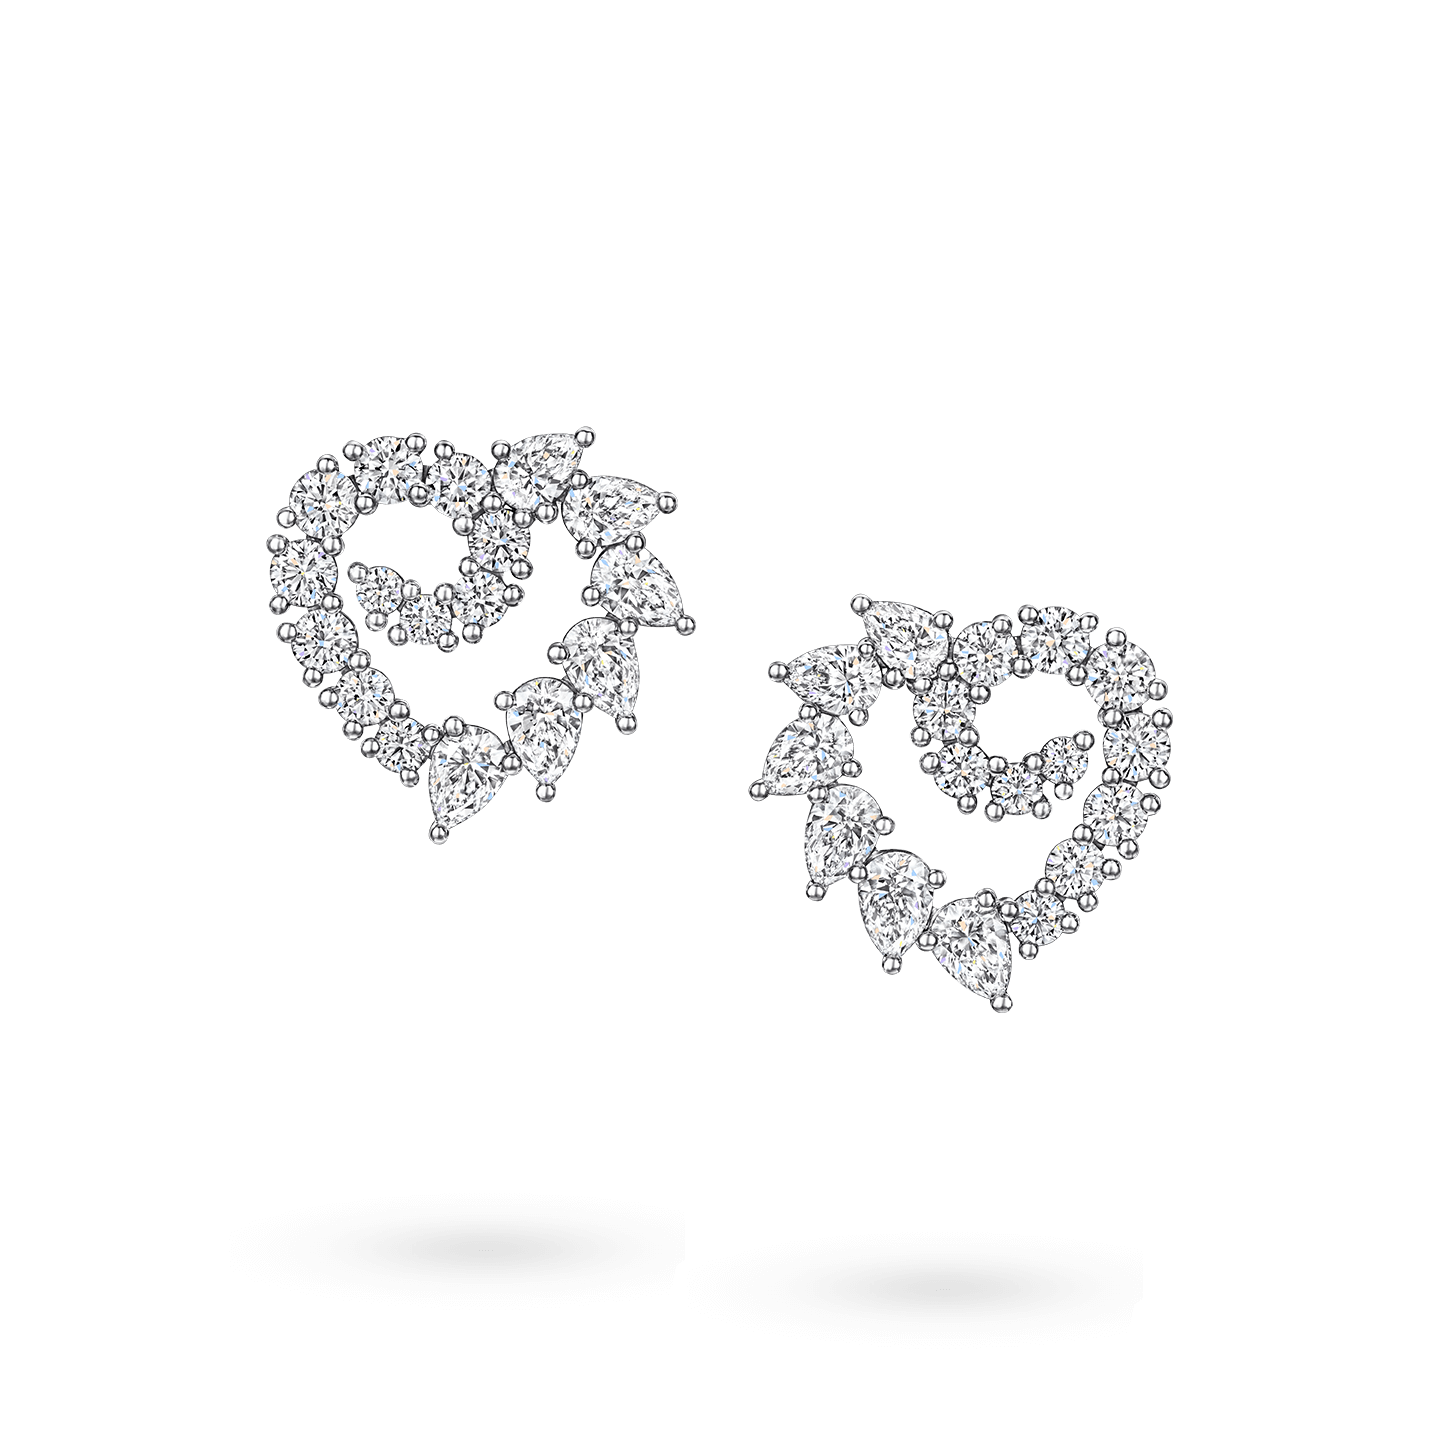 Garland Heart Diamond Earrings, Product Image 1